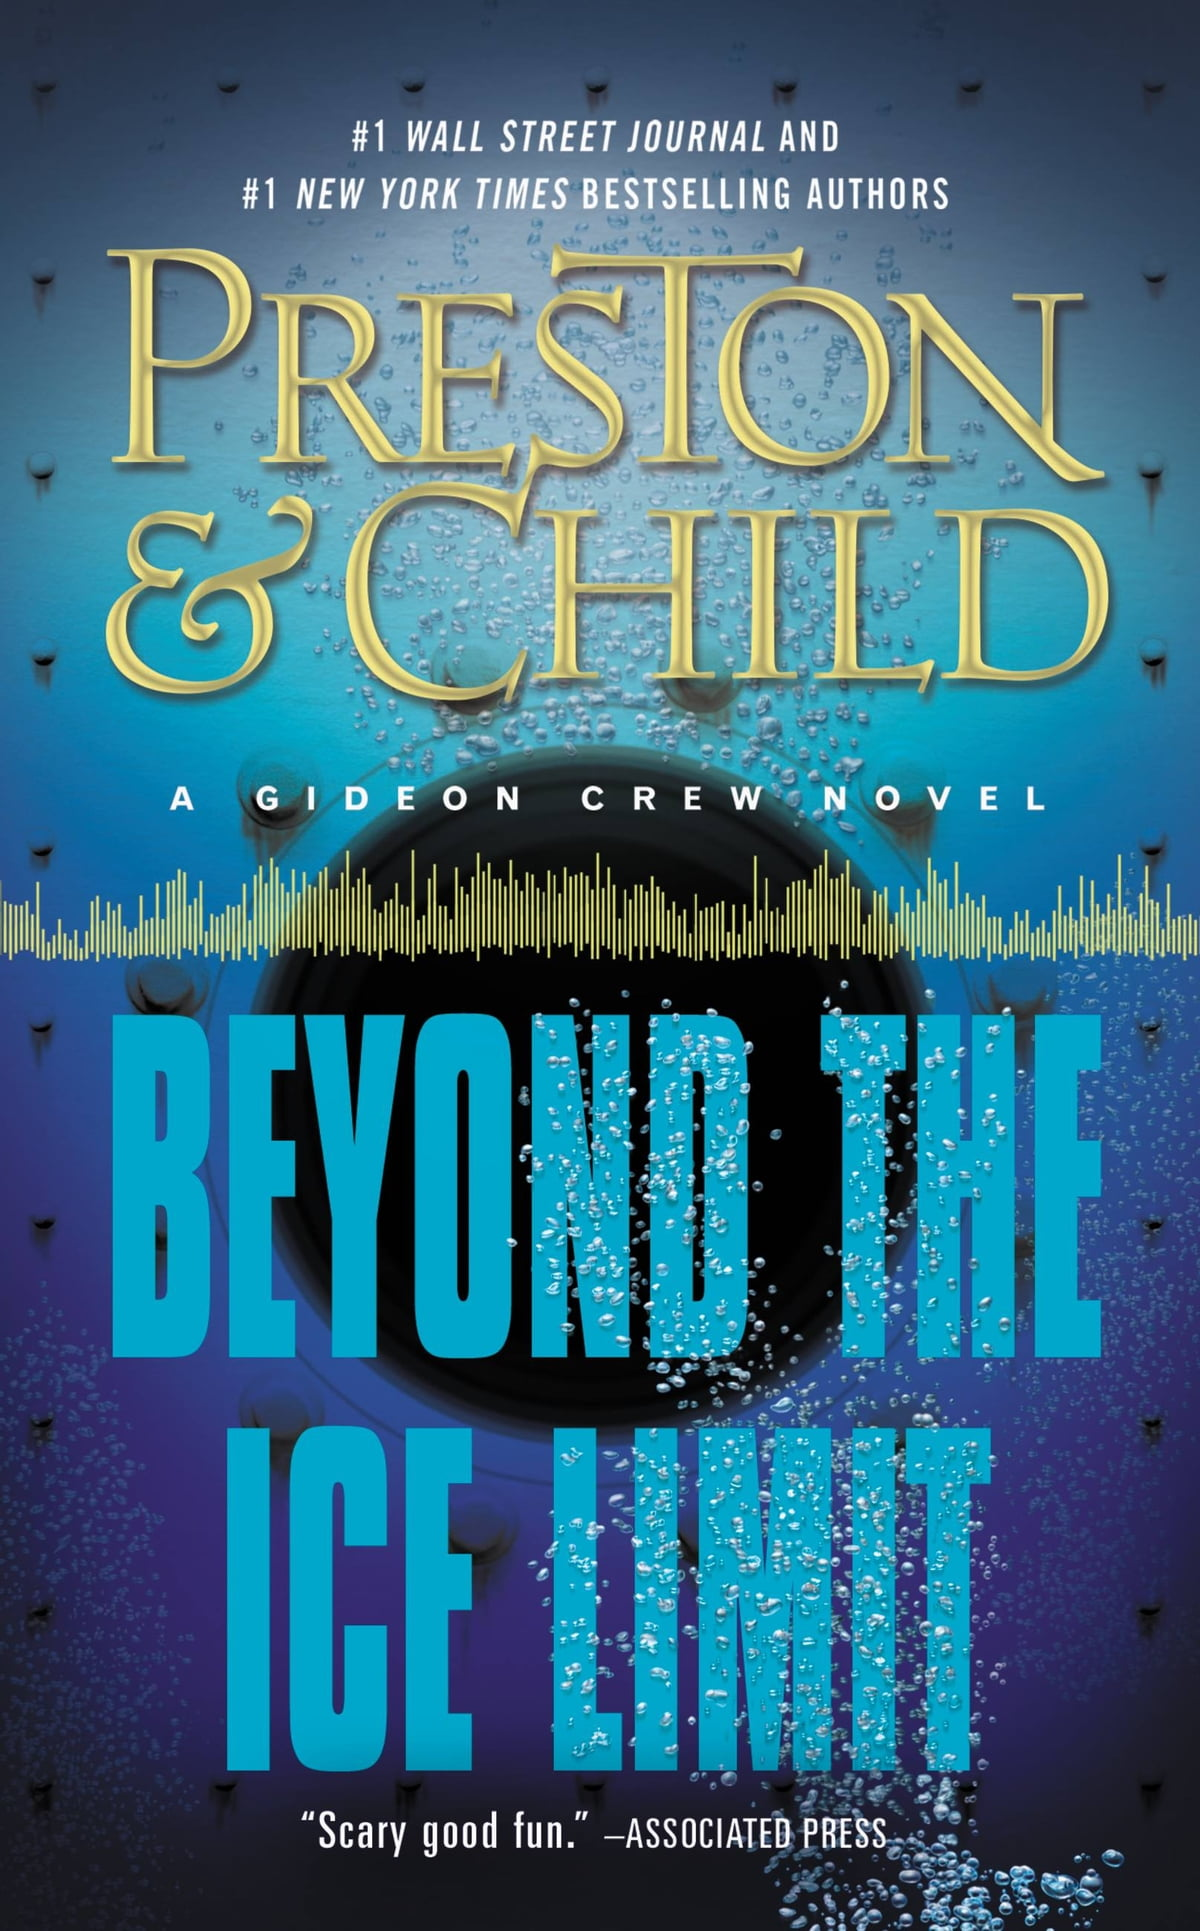 Beyond The Ice Limit  A Gideon Crew Novel Ebook By Douglas Preston,  Lincoln Child